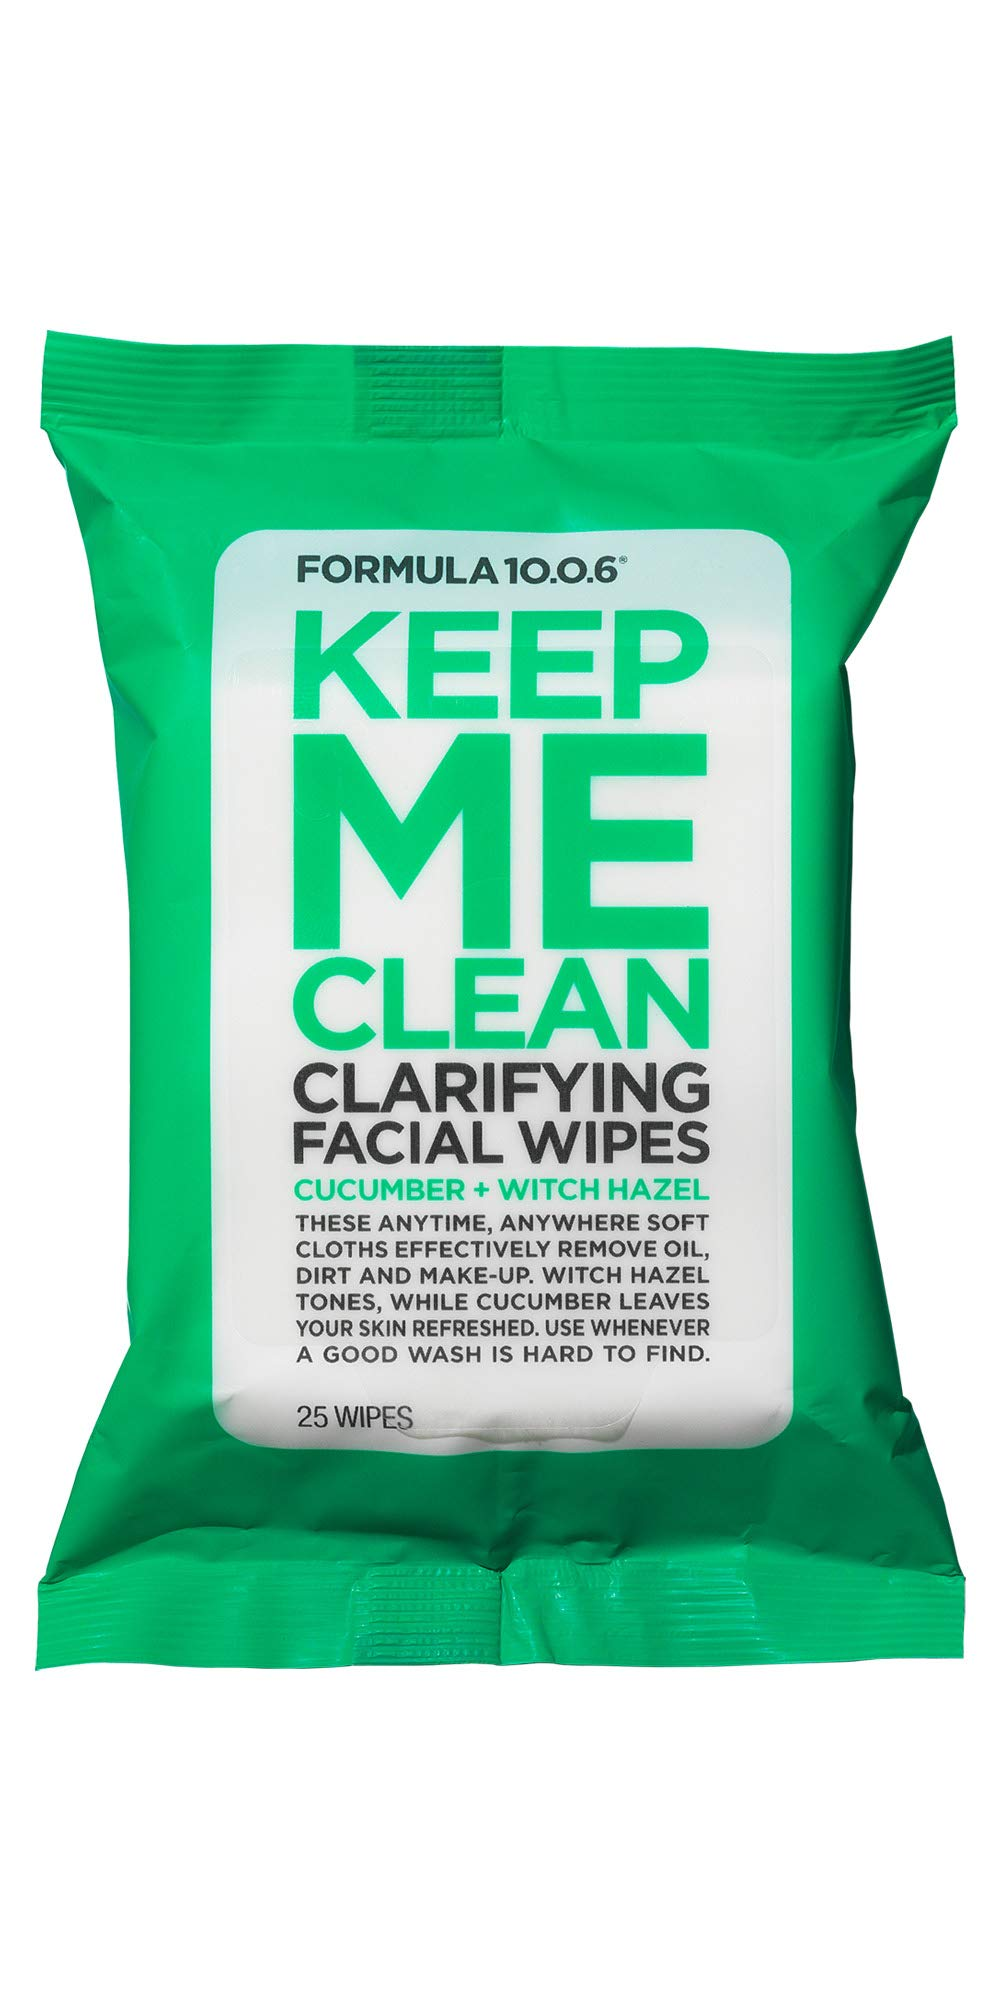 Formula 10.0.6 Keep Me Clean Clarifying Facial Wipes (25 Pc Pkt.) Daily Cleansing Face Wipes that Remove Make-Up, Excess Oil & Impurities from Skin - Vegan, Paraben-Free, Sulfate-Free & Cruelty-Free